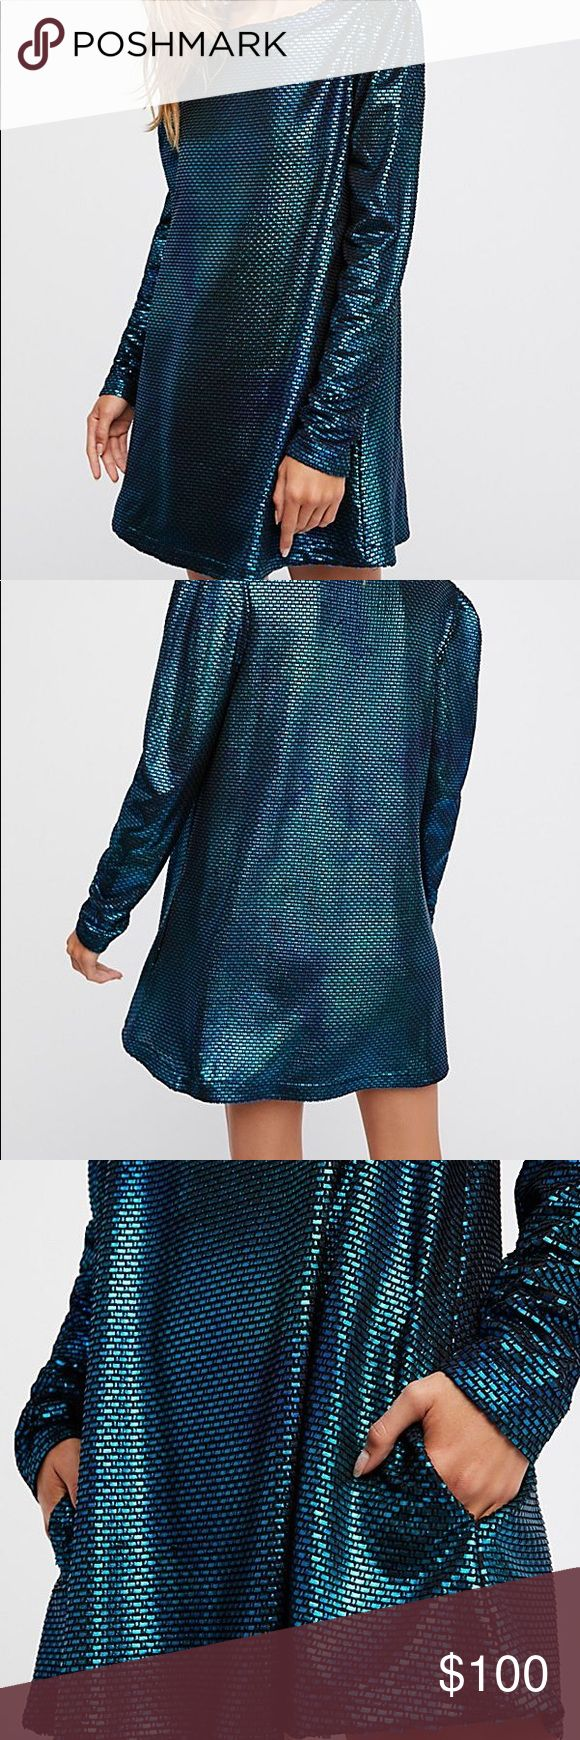 NWT Free People Diamonds are forever dress NWT Free People Diamonds are forever dress.  Long sleeve metallic mini dress featuring structured shoulders and a swingy silhouette. Side pockets! 100% polyester Never worn. **all items come from a smoke free, pet free home** Free People Dresses Mini